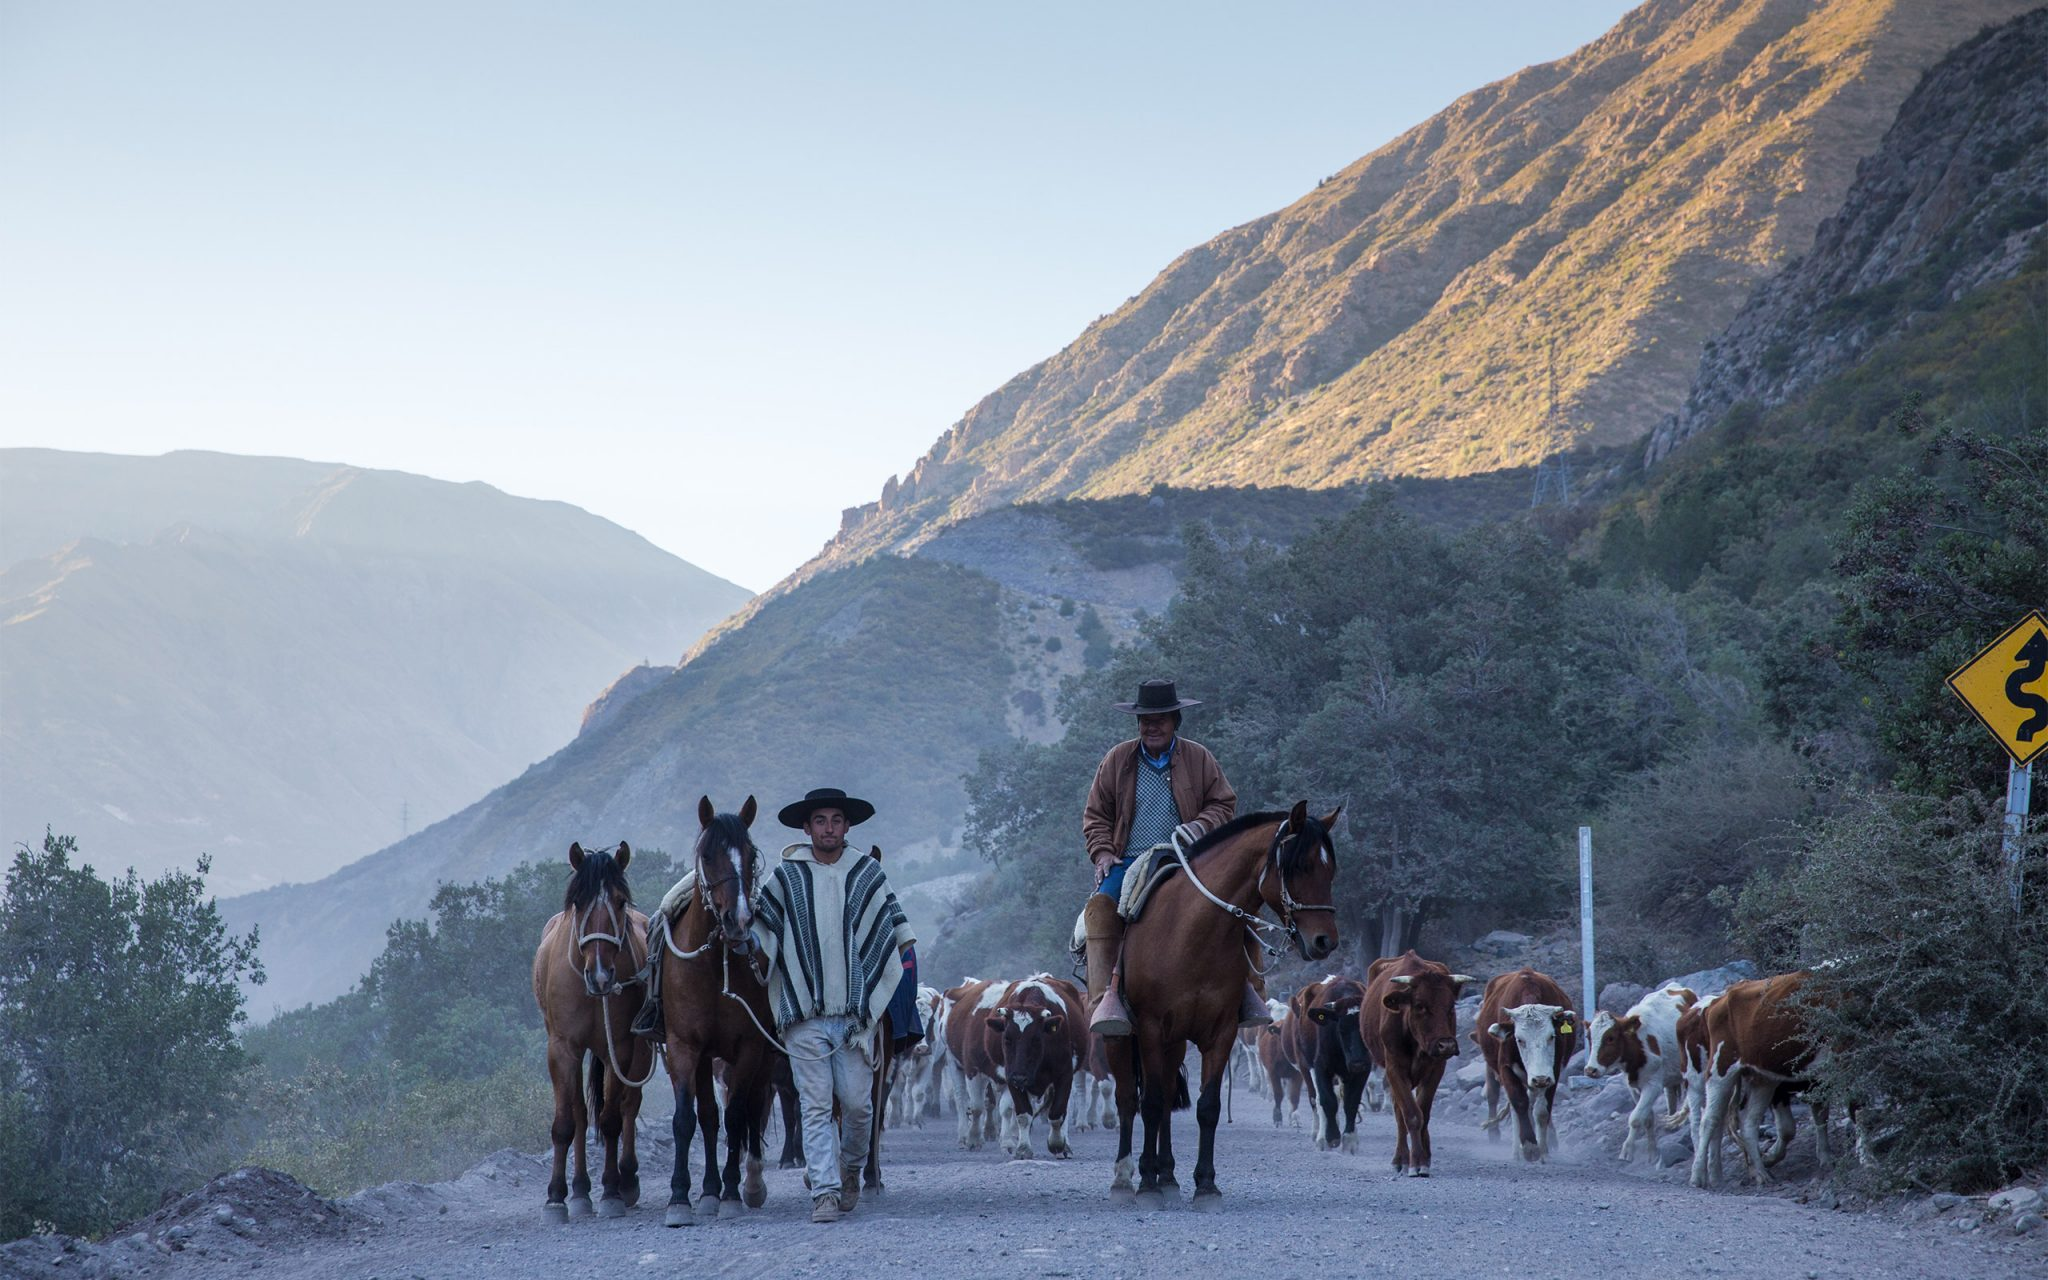 'Huaso Chileno' - Chilean Cowboys in The Andes Mountains. Shepherds taking cattle to market in Chile. Carey Marks Photography